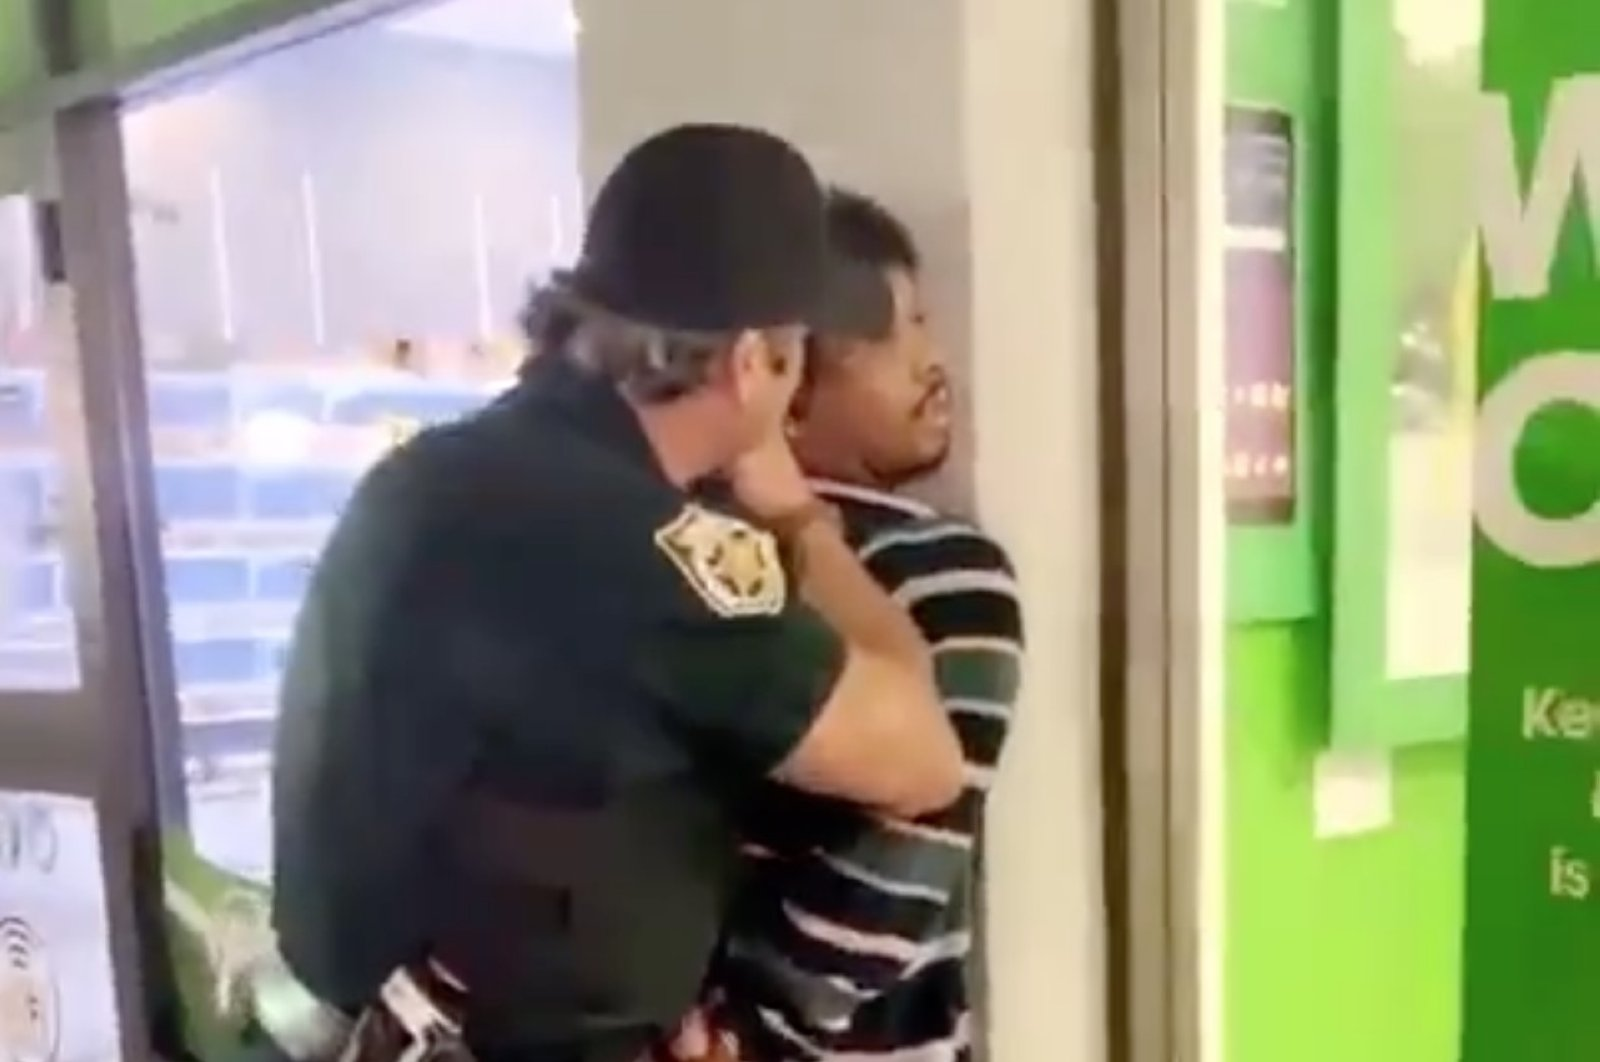 This screengrab from the video shared on Twitter shows sheriff deputy Charles Rhoads shoving the black man he detained in Florida's Palm Beach County on Aug. 18, 2020.